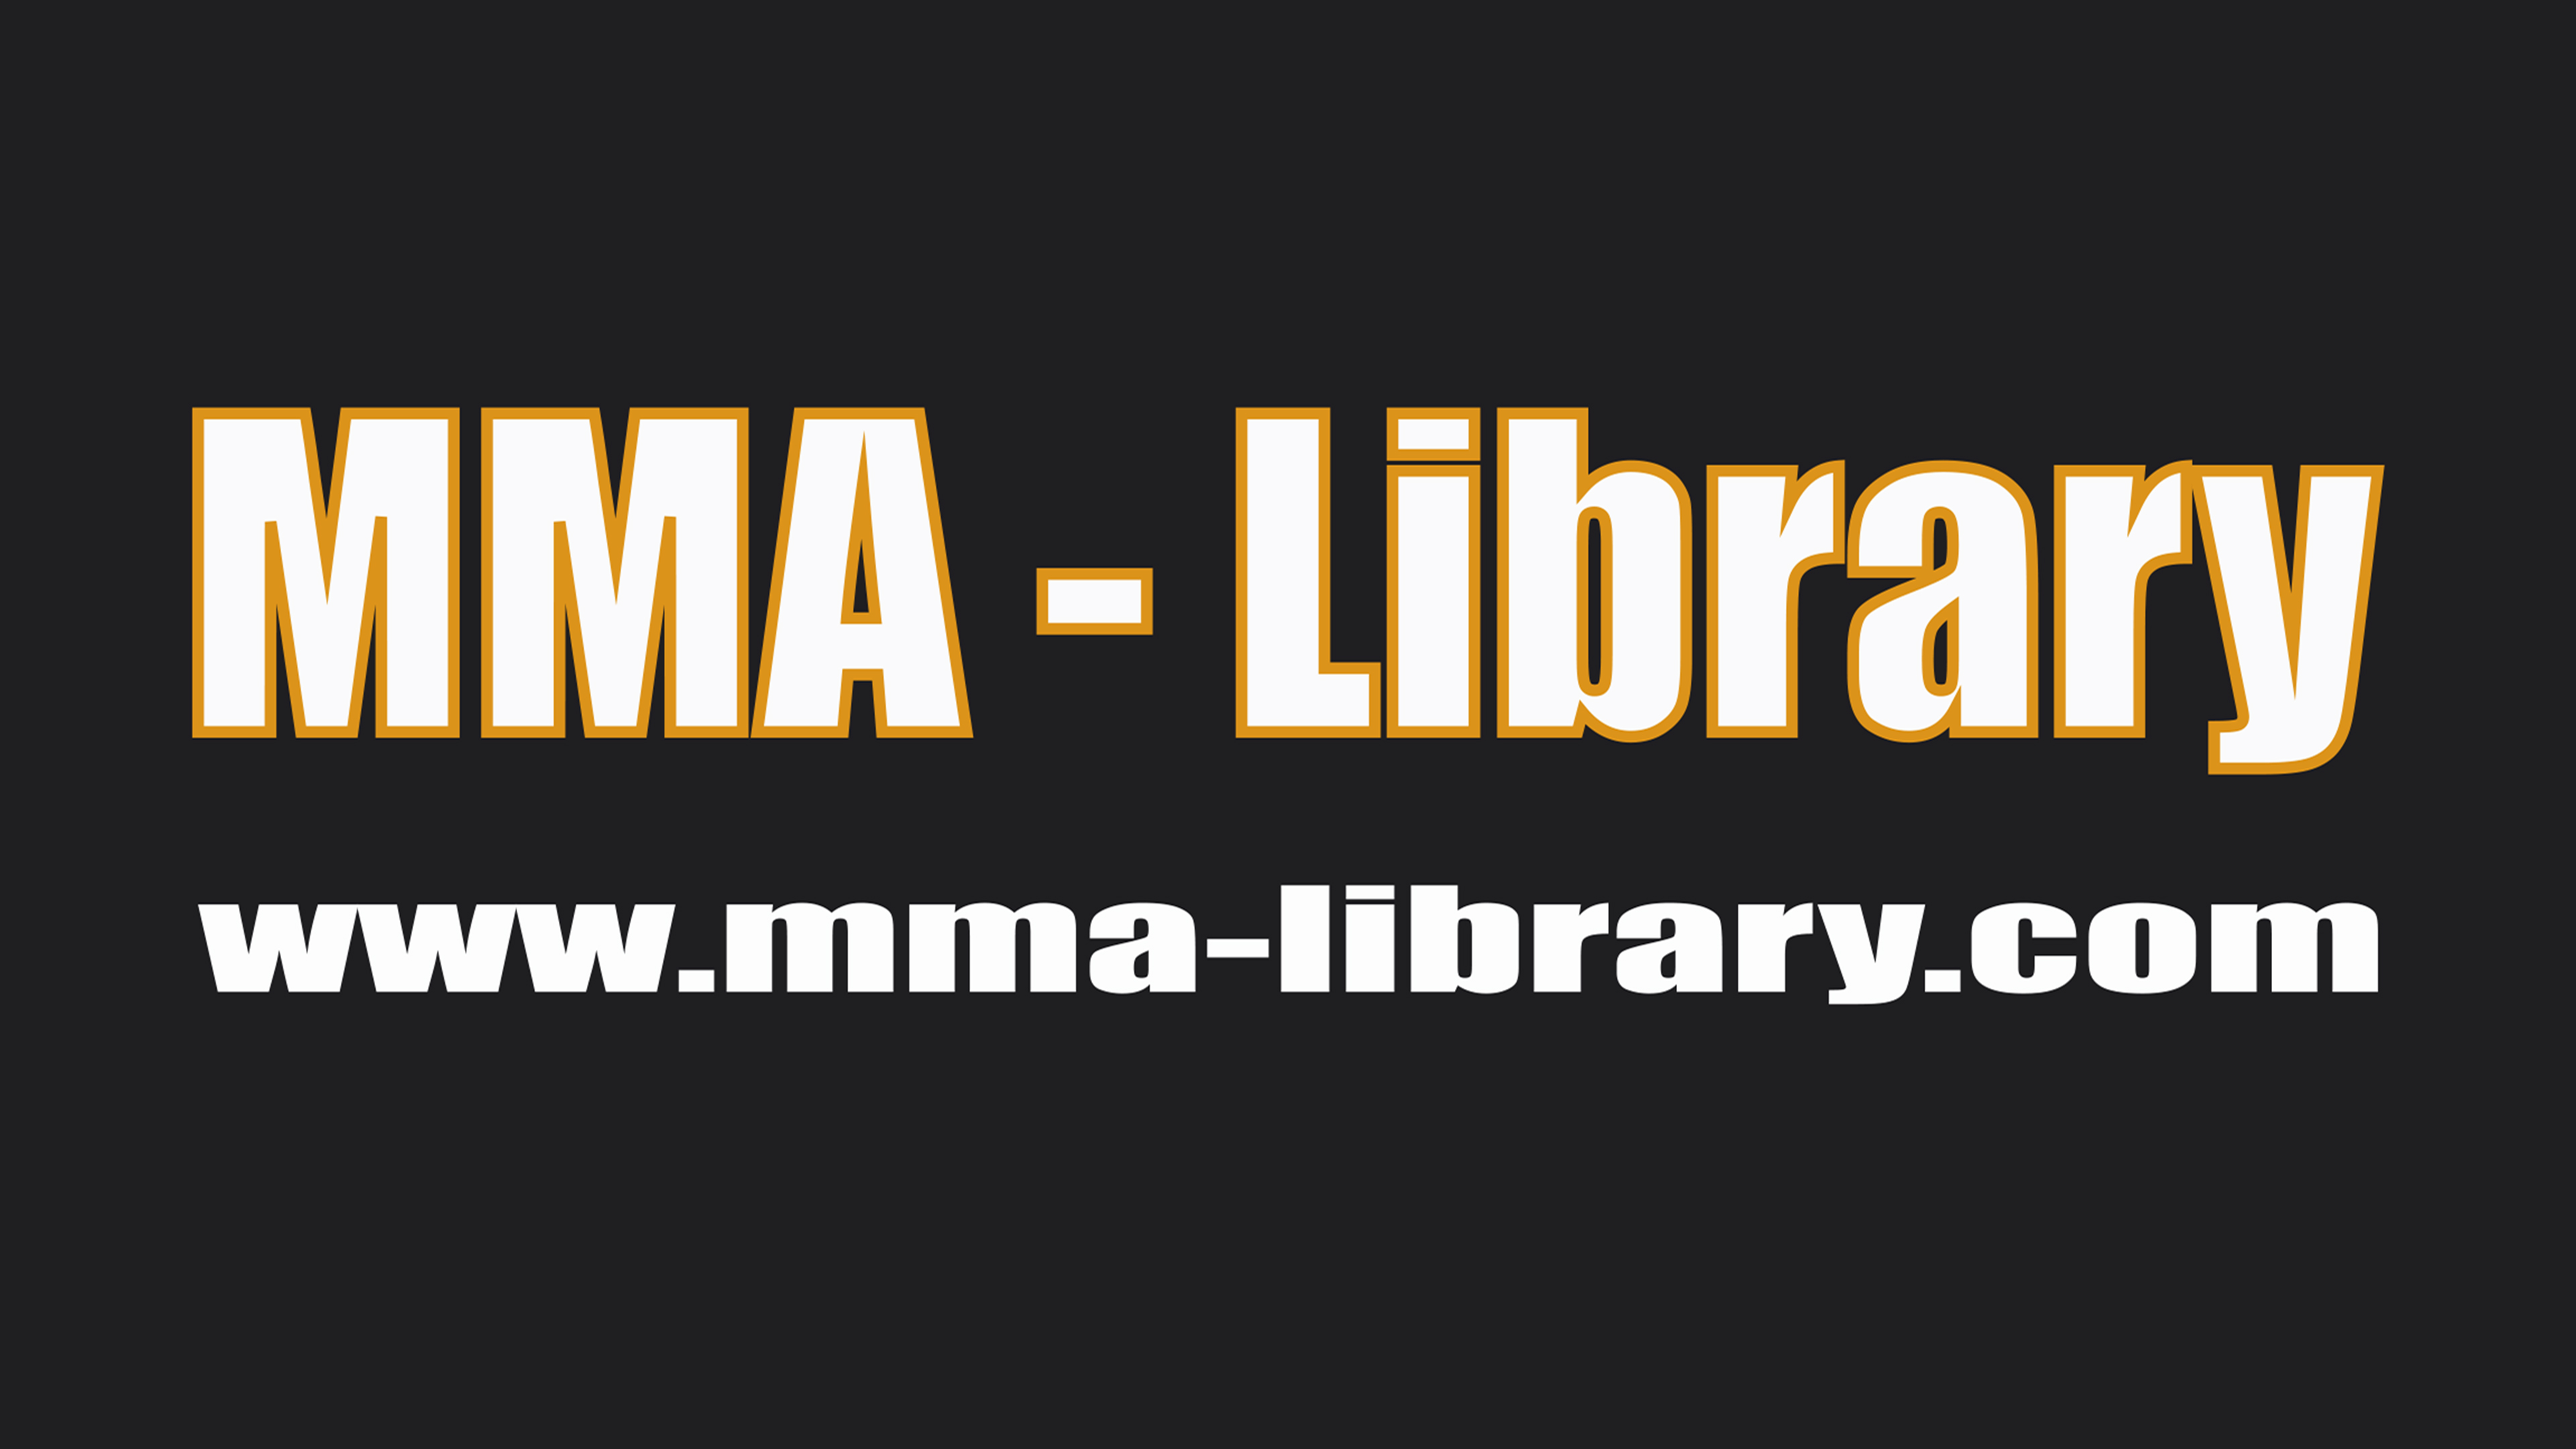 MMA Library